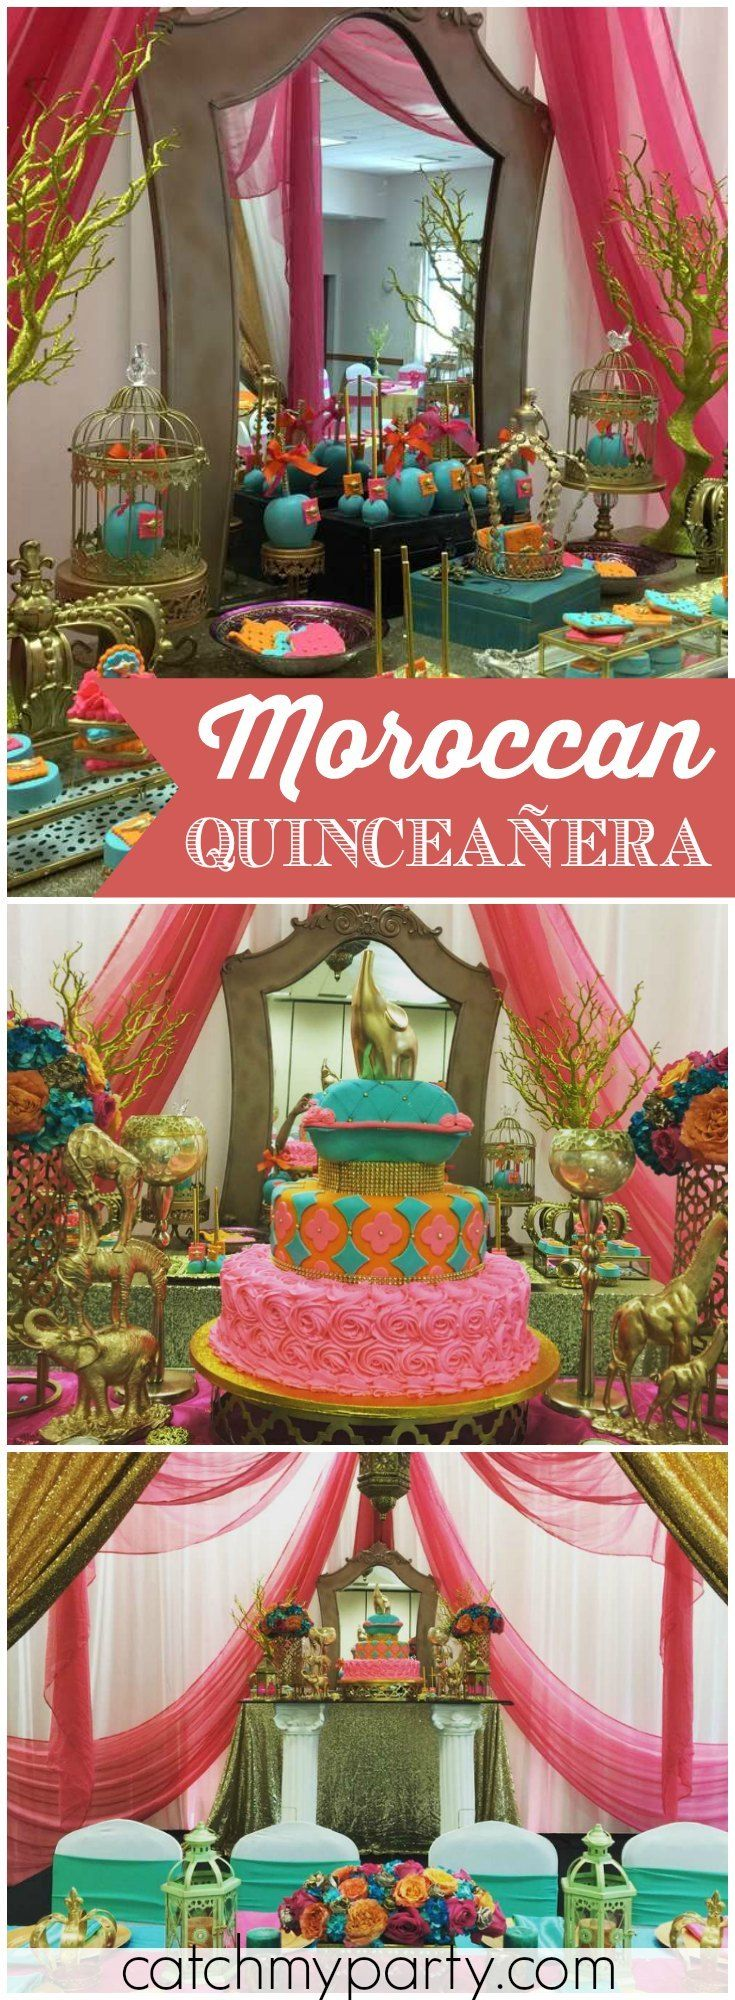 Here's a beautiful Moroccan style Quinceañera in hot pink and orange! See more party ideas at Catchmyparty.com!